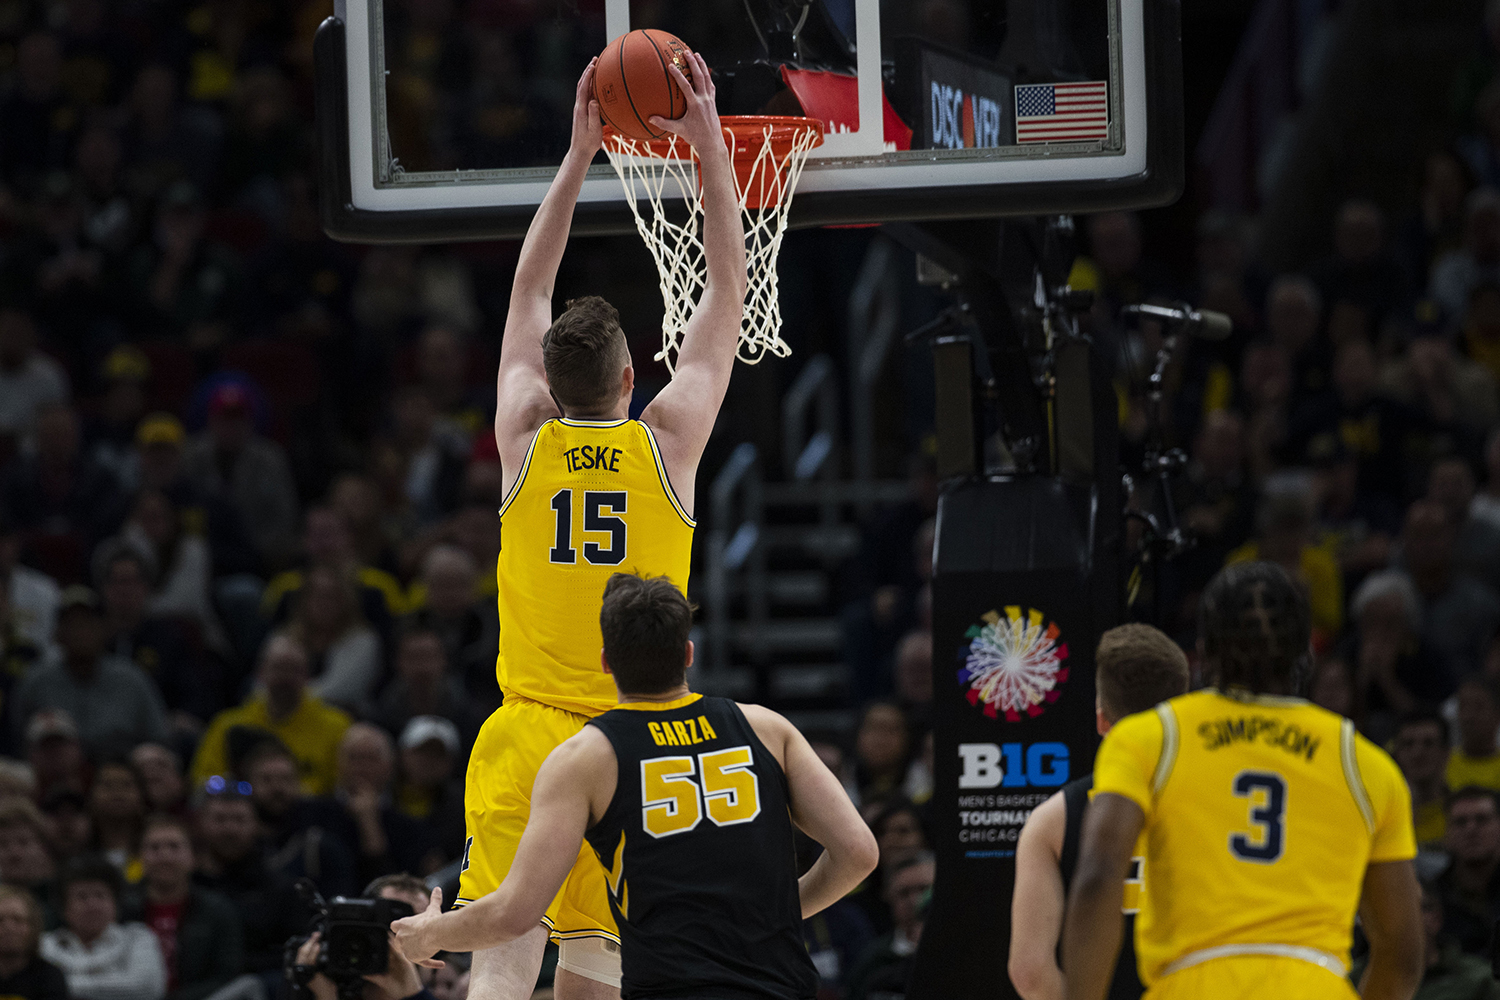 Michigan+center+Jon+Teske+dunks+during+the+Iowa%2FMichigan+Big+Ten+Tournament+men%27s+basketball+game+in+the+United+Center+in+Chicago+on+Friday%2C+March+15%2C+2019.+The+Wolverines+defeated+the+Hawkeyes%2C+74-53.+